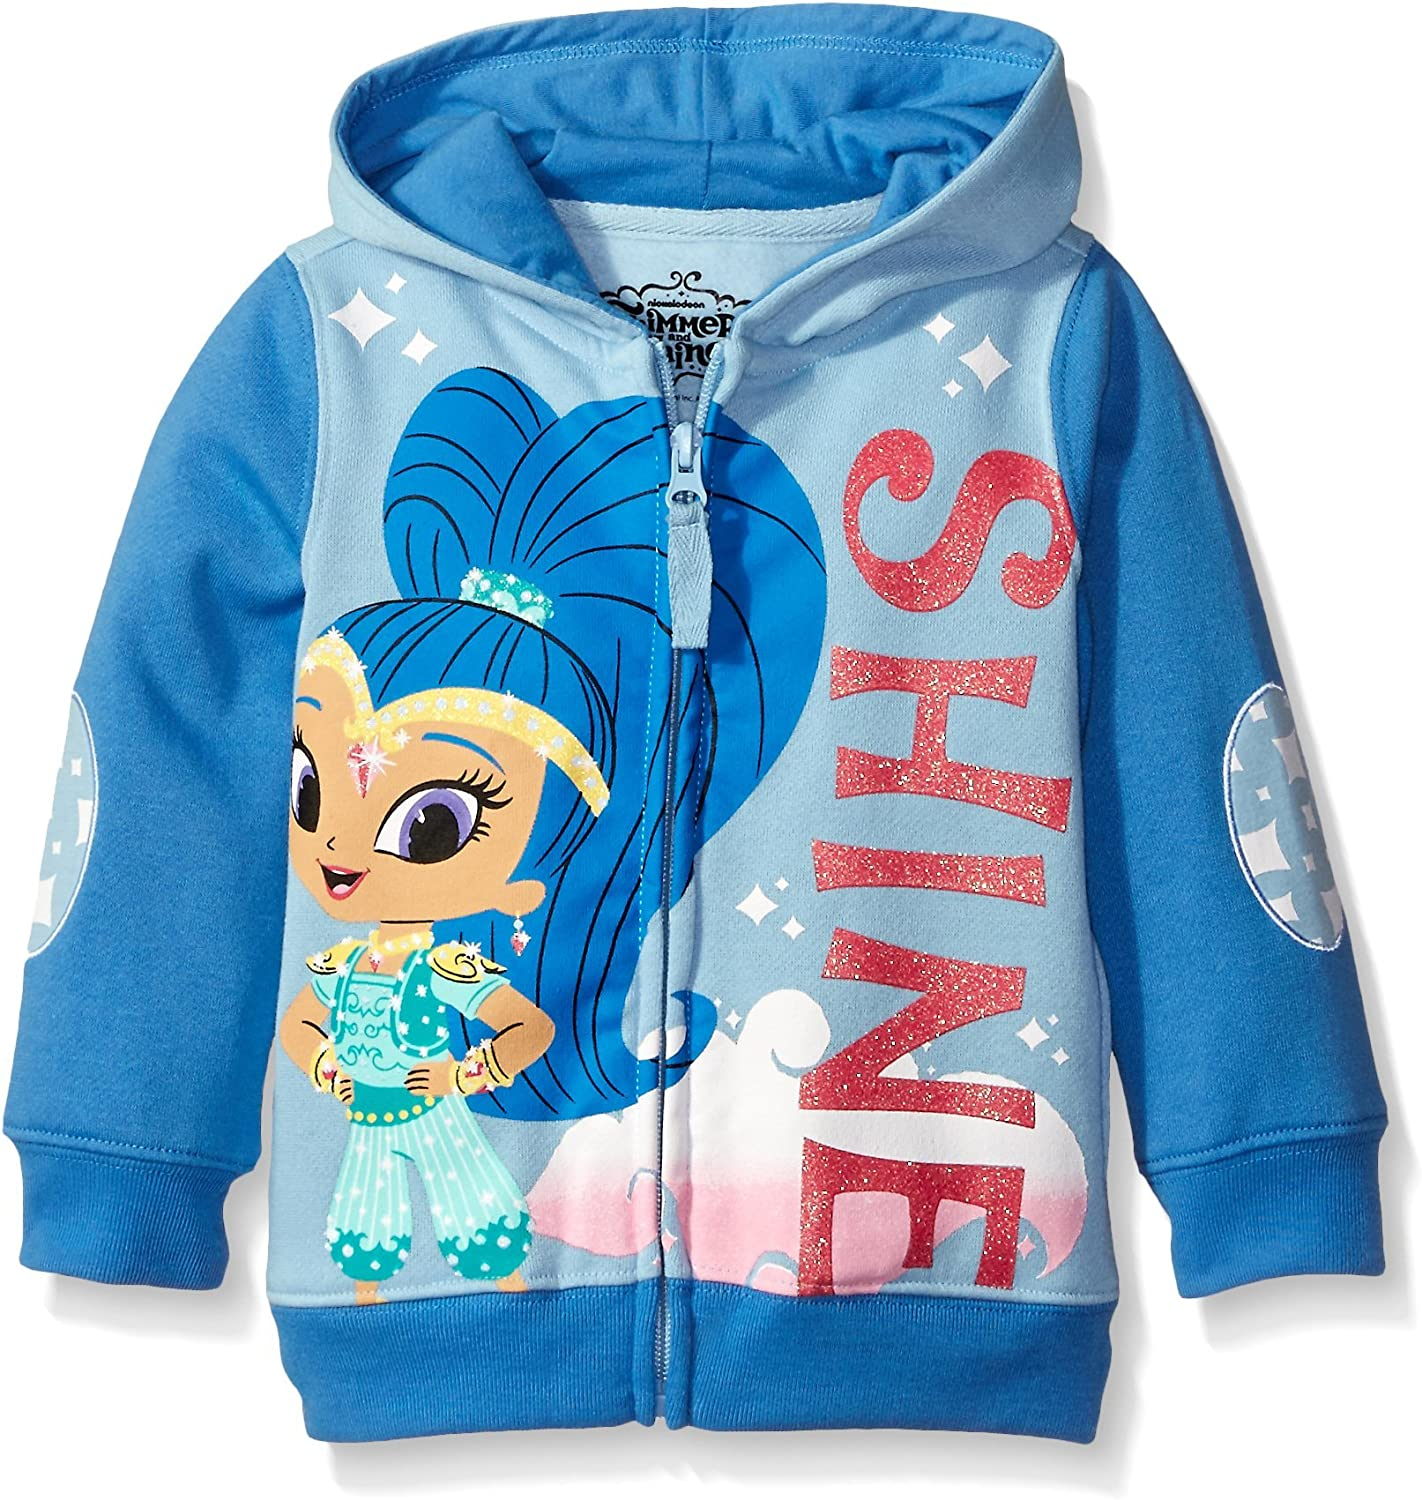 Shimmer and Shine Little Girls' Toddler Character Hoodie, Aqua/Dark Turquoise, 4T: Clothing